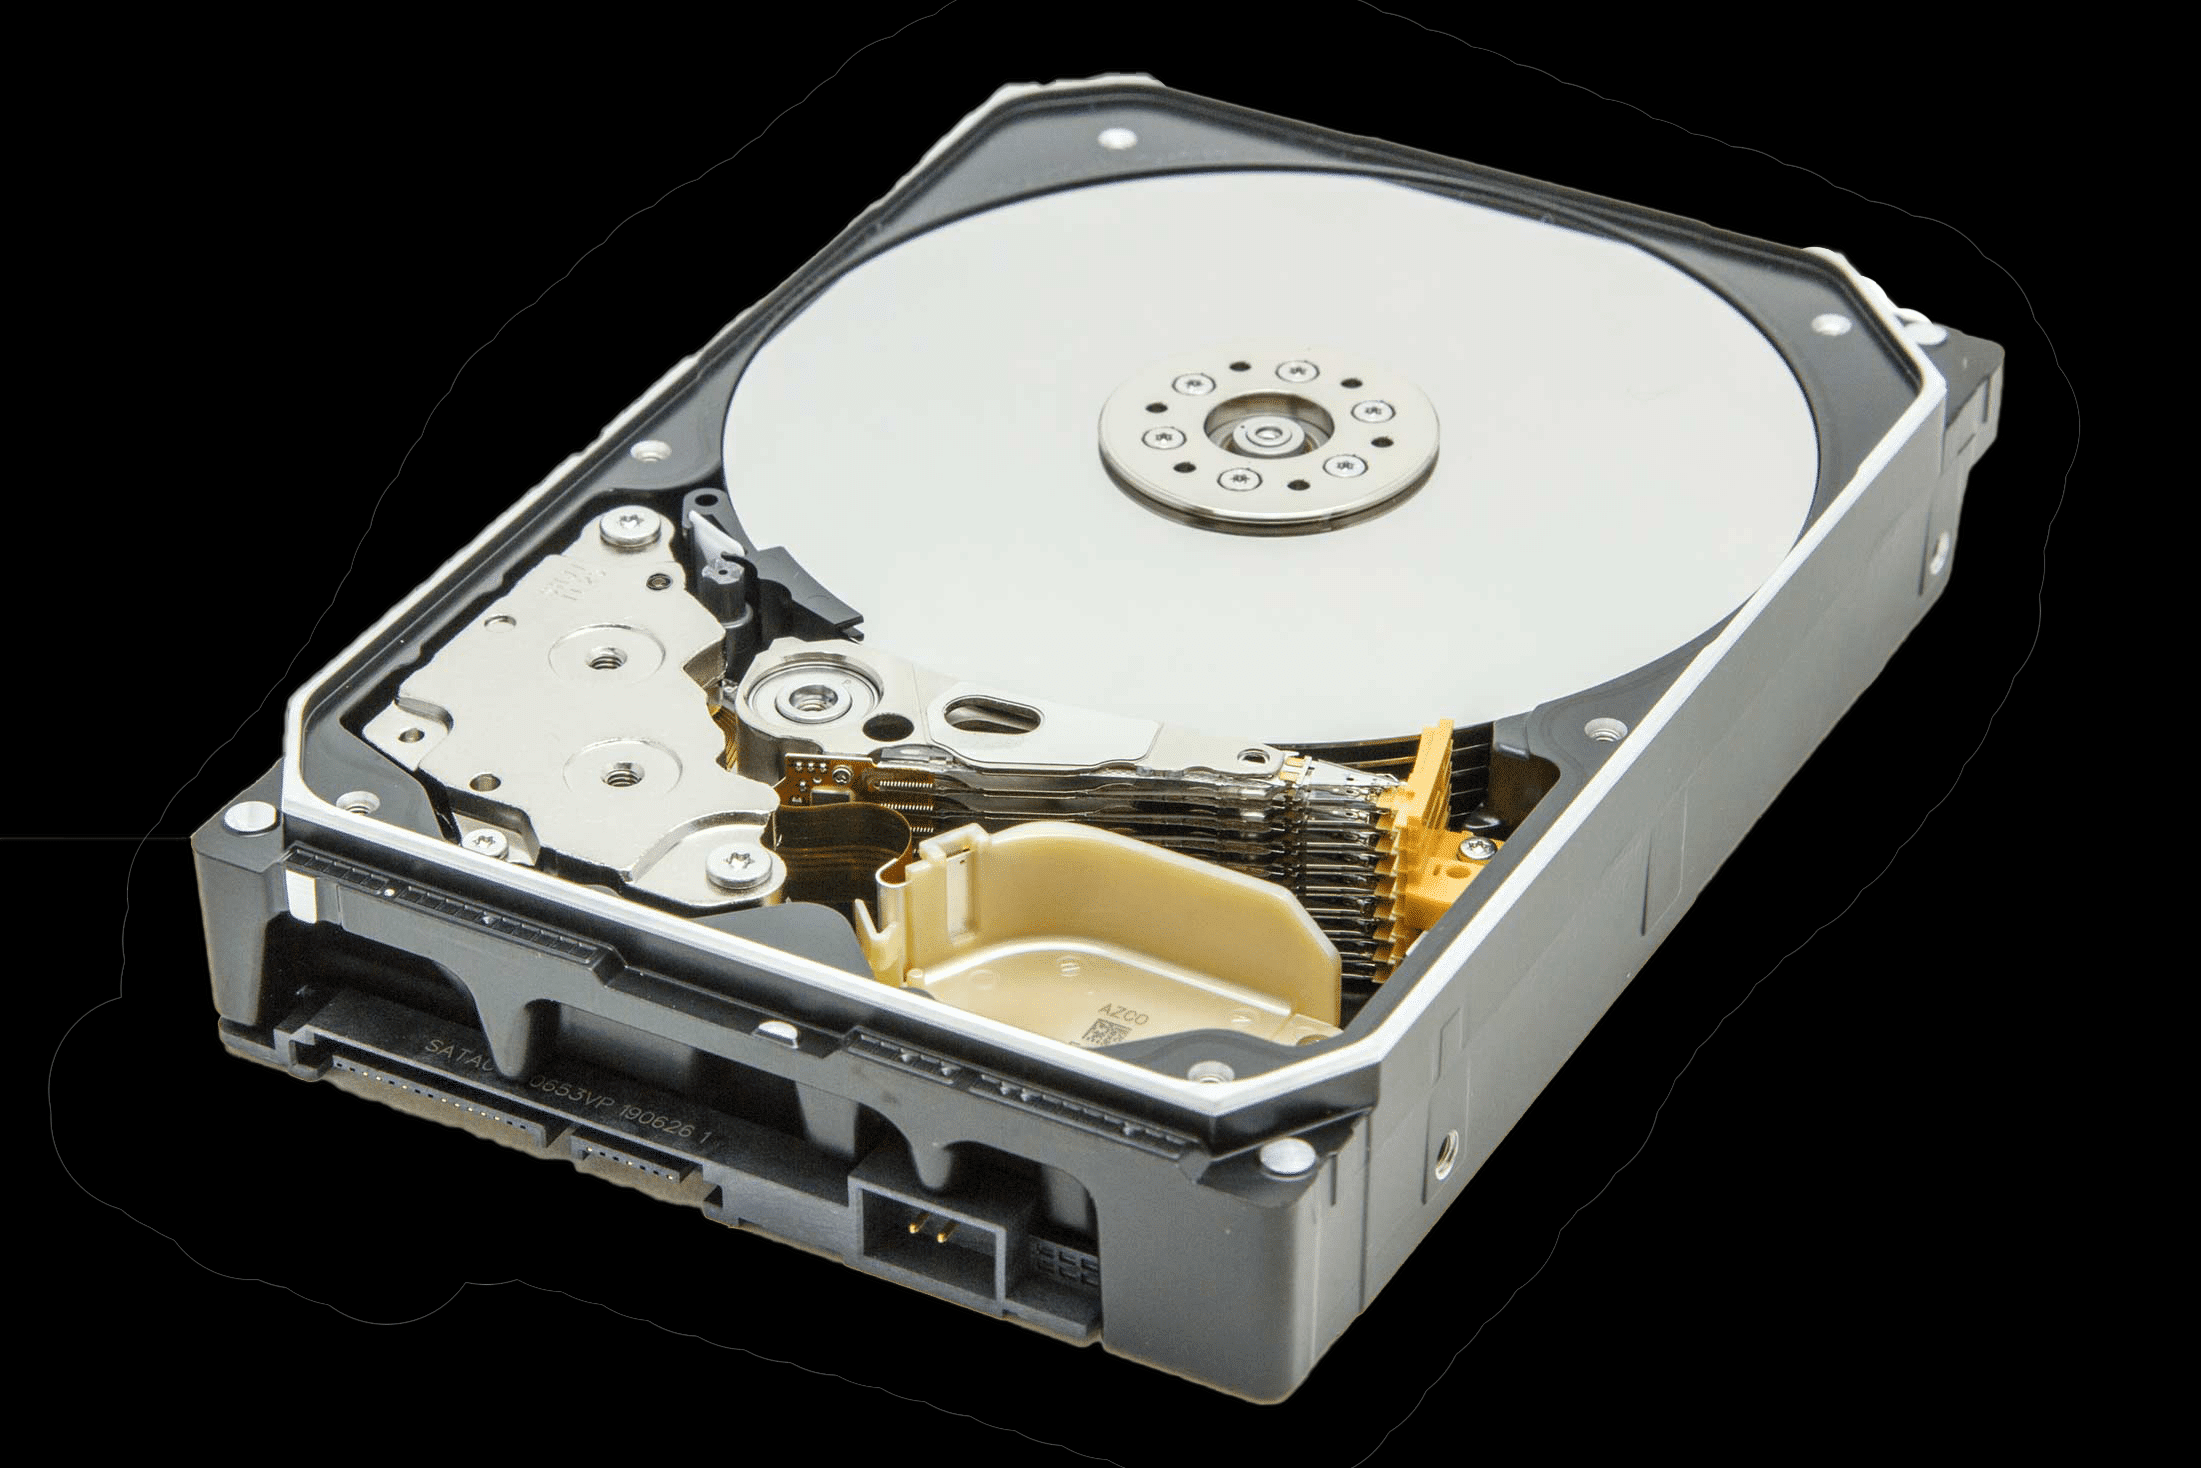 Three Technologies that Make HDD Magic